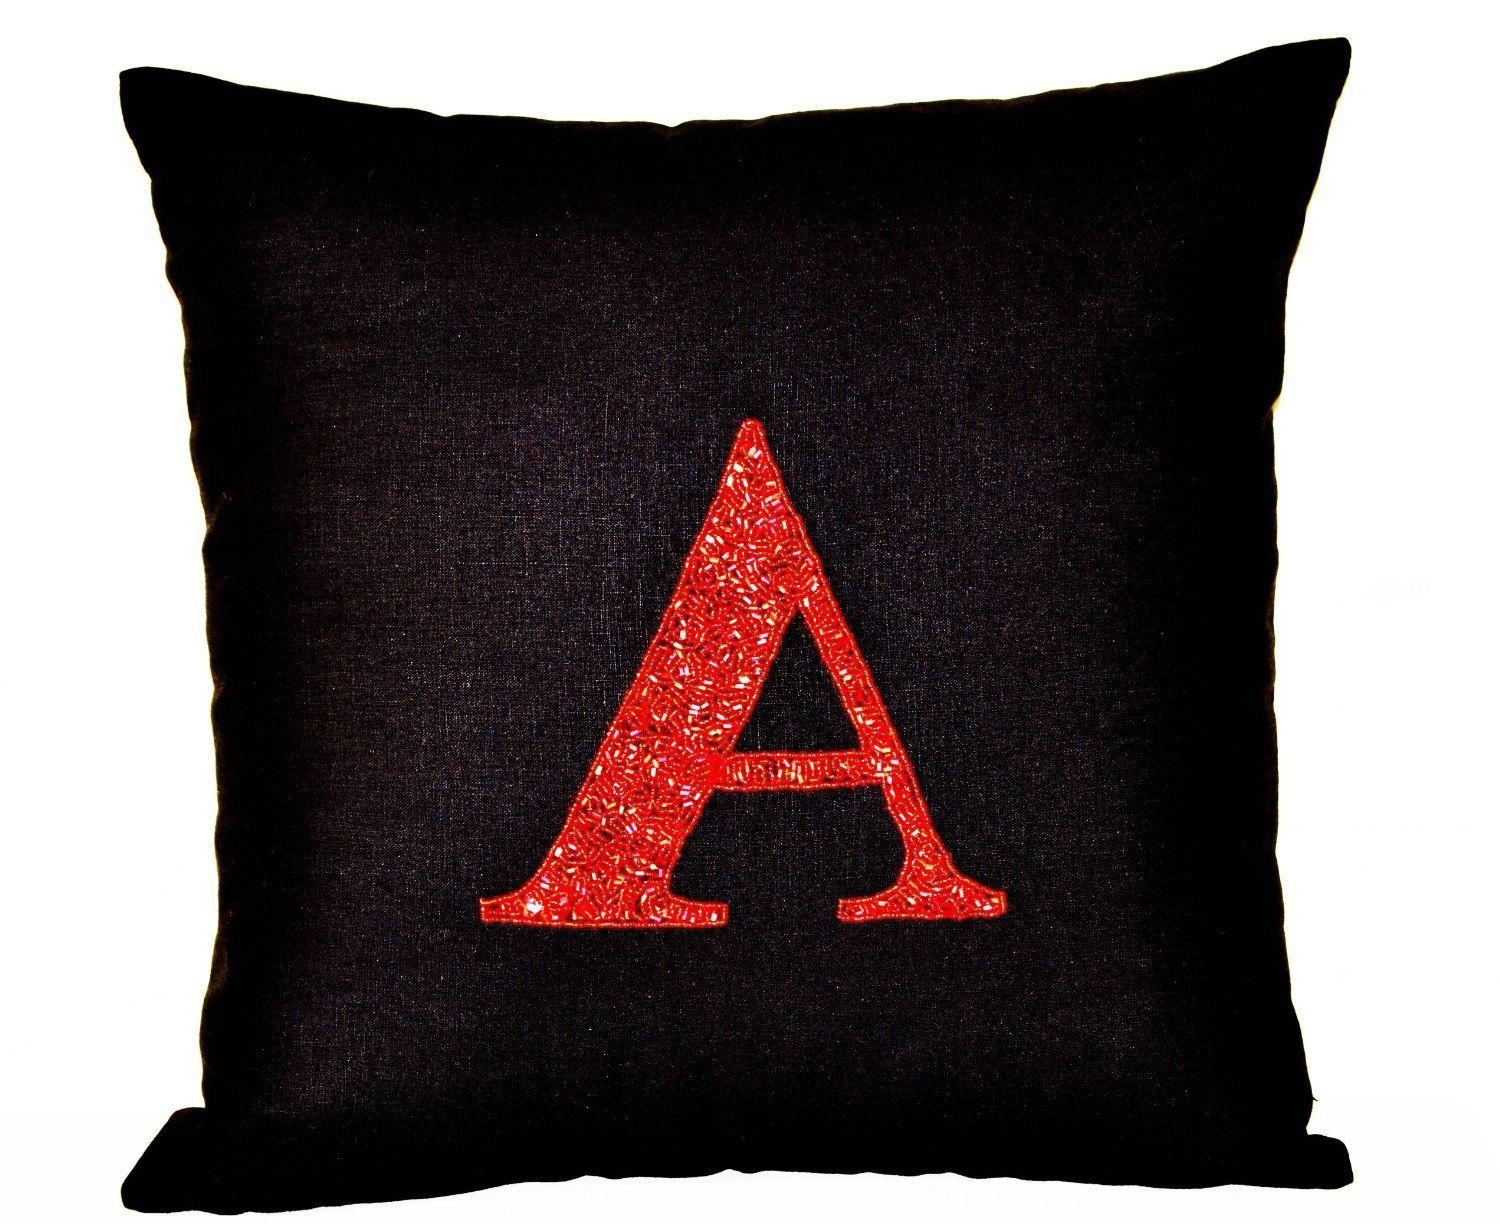 Initial Pillow Covers Amore Beaute Handcrafted Initial Pillow Cover  Red Sequin Monogram